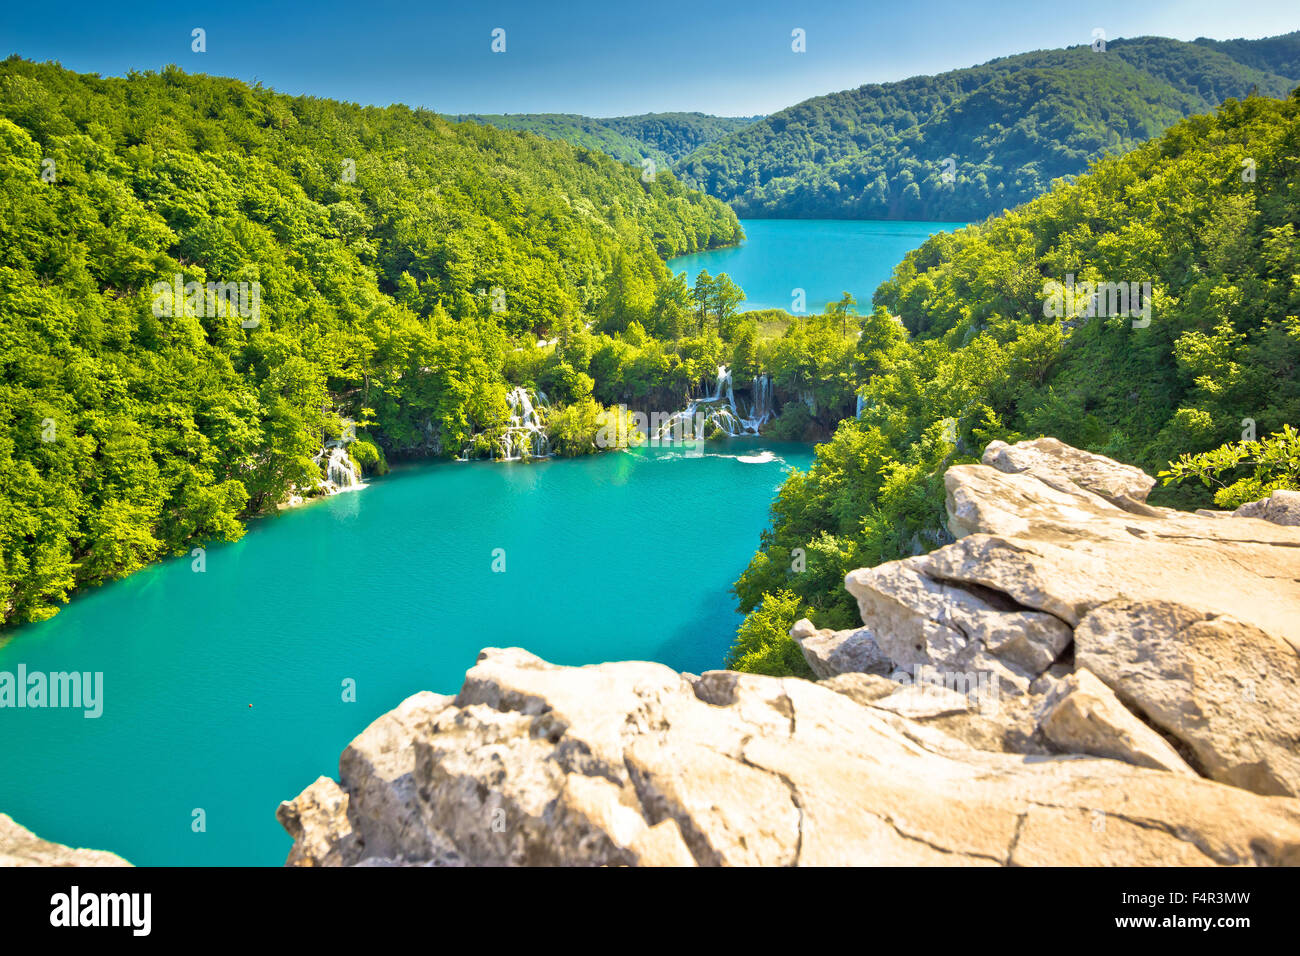 Turquoise water of Plitvice lakes national park in Croatia - Stock Image